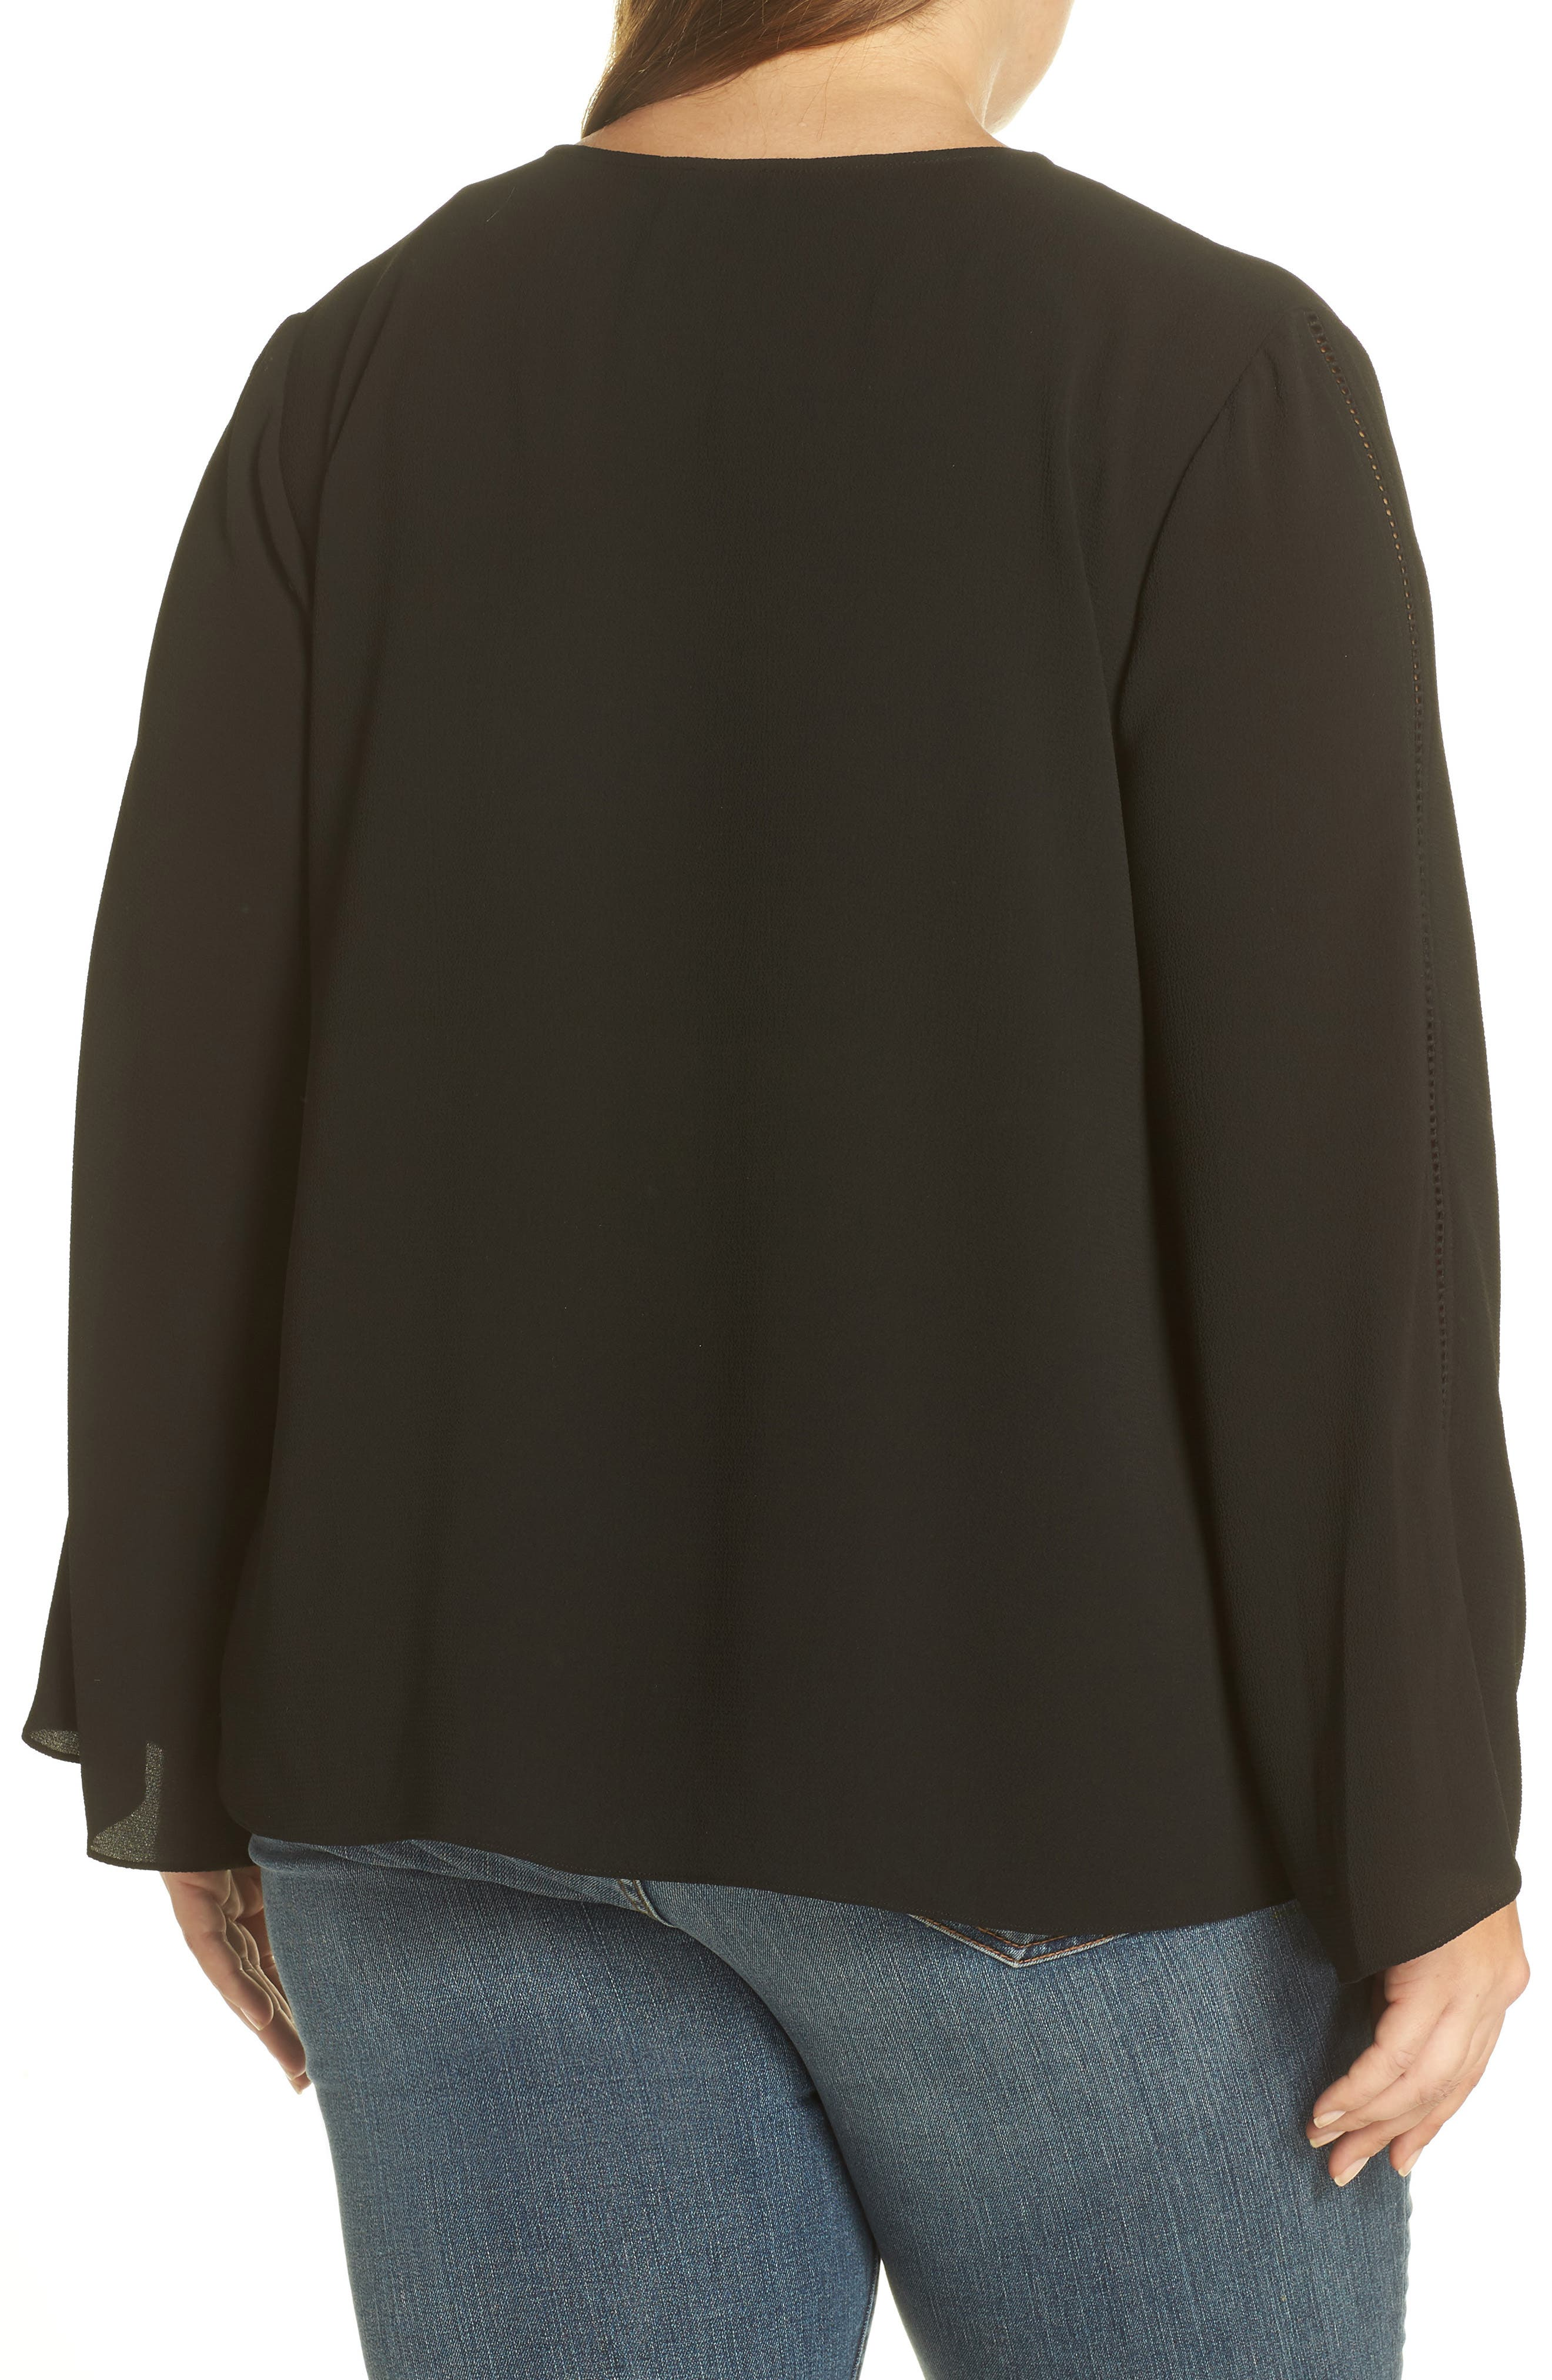 Bell Sleeve Ladder Stitch Top,                             Alternate thumbnail 2, color,                             010